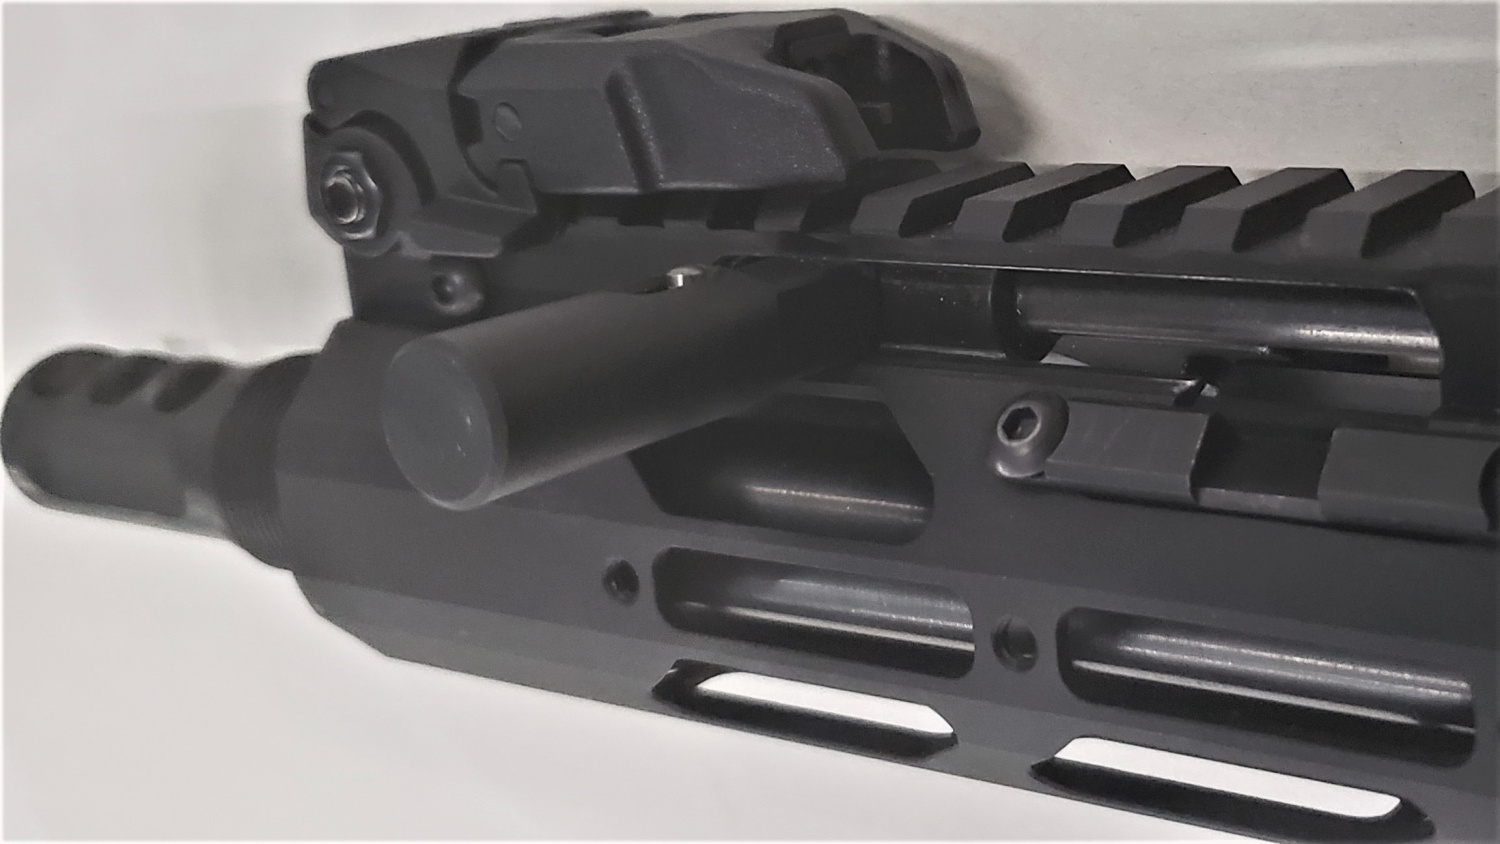 Charging handle in the forward position